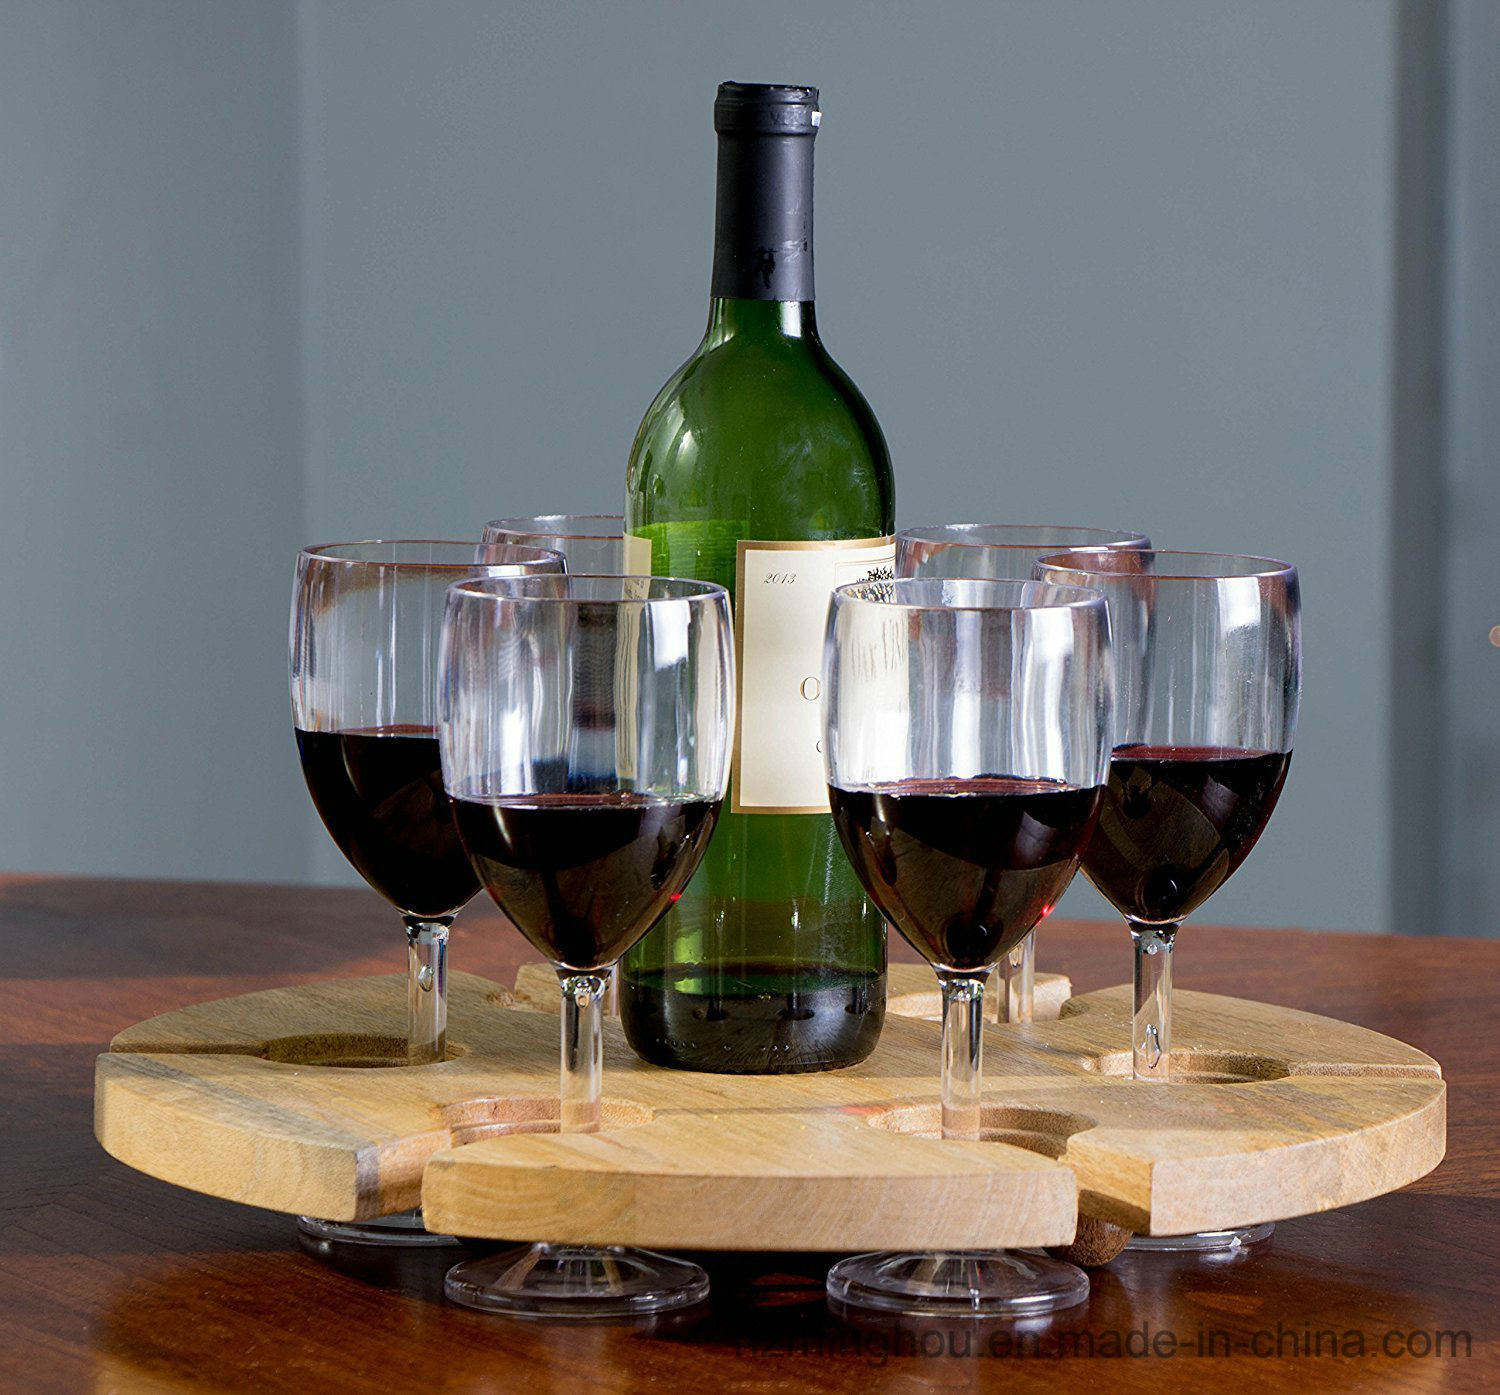 China 6 Slot Wood Tabletop Wine Glass Holder And Serving Tray